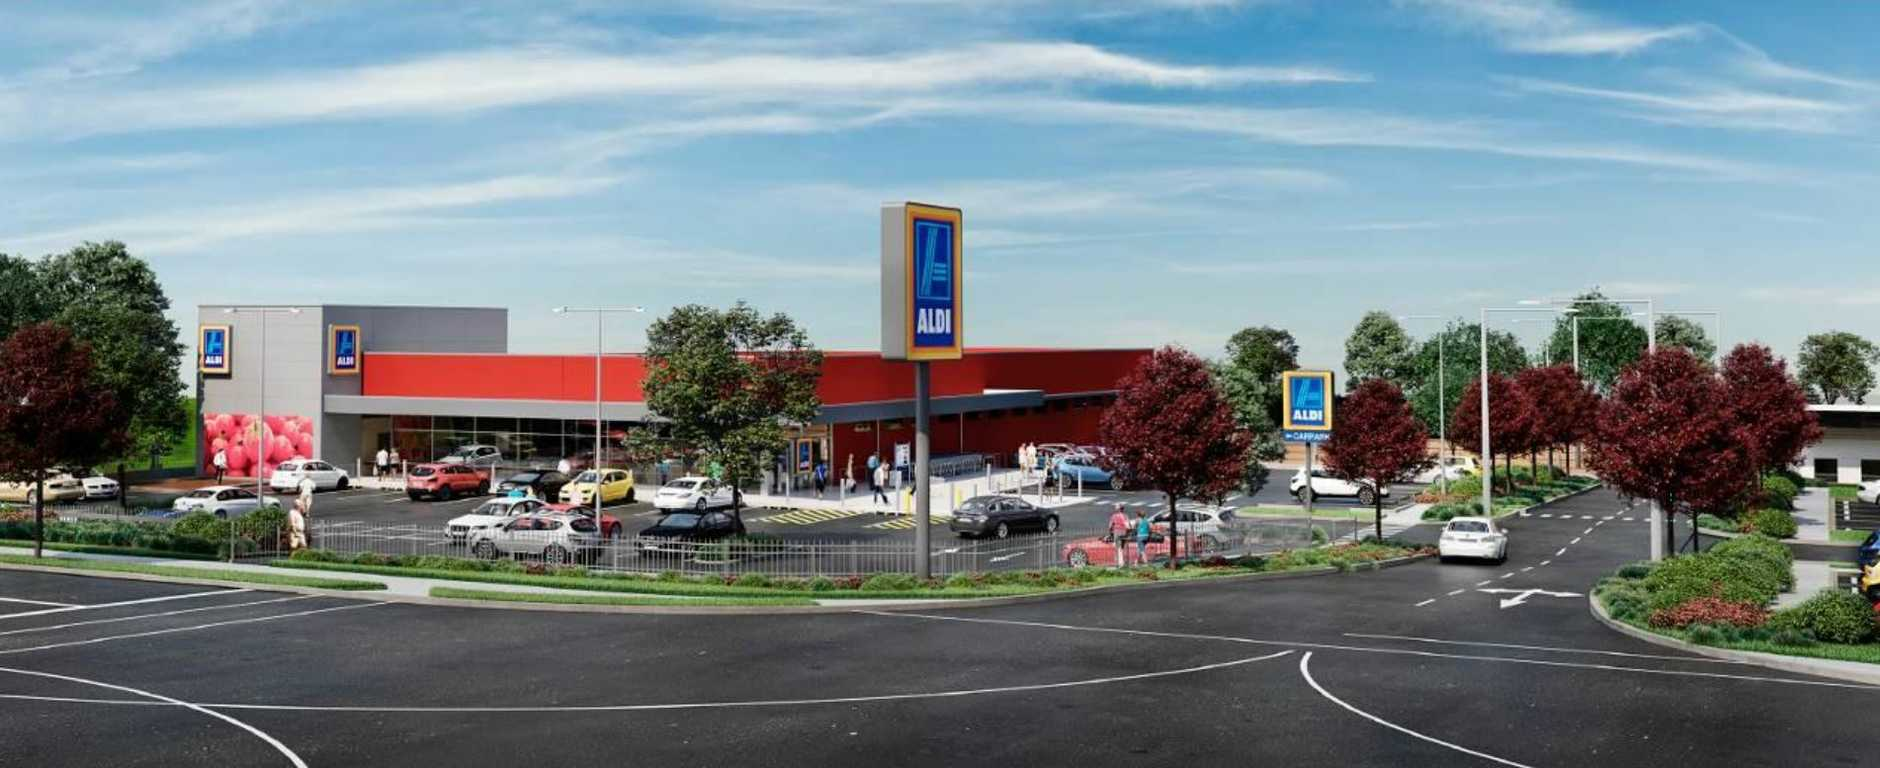 A new Aldi supermarket has been approved in Highfields.